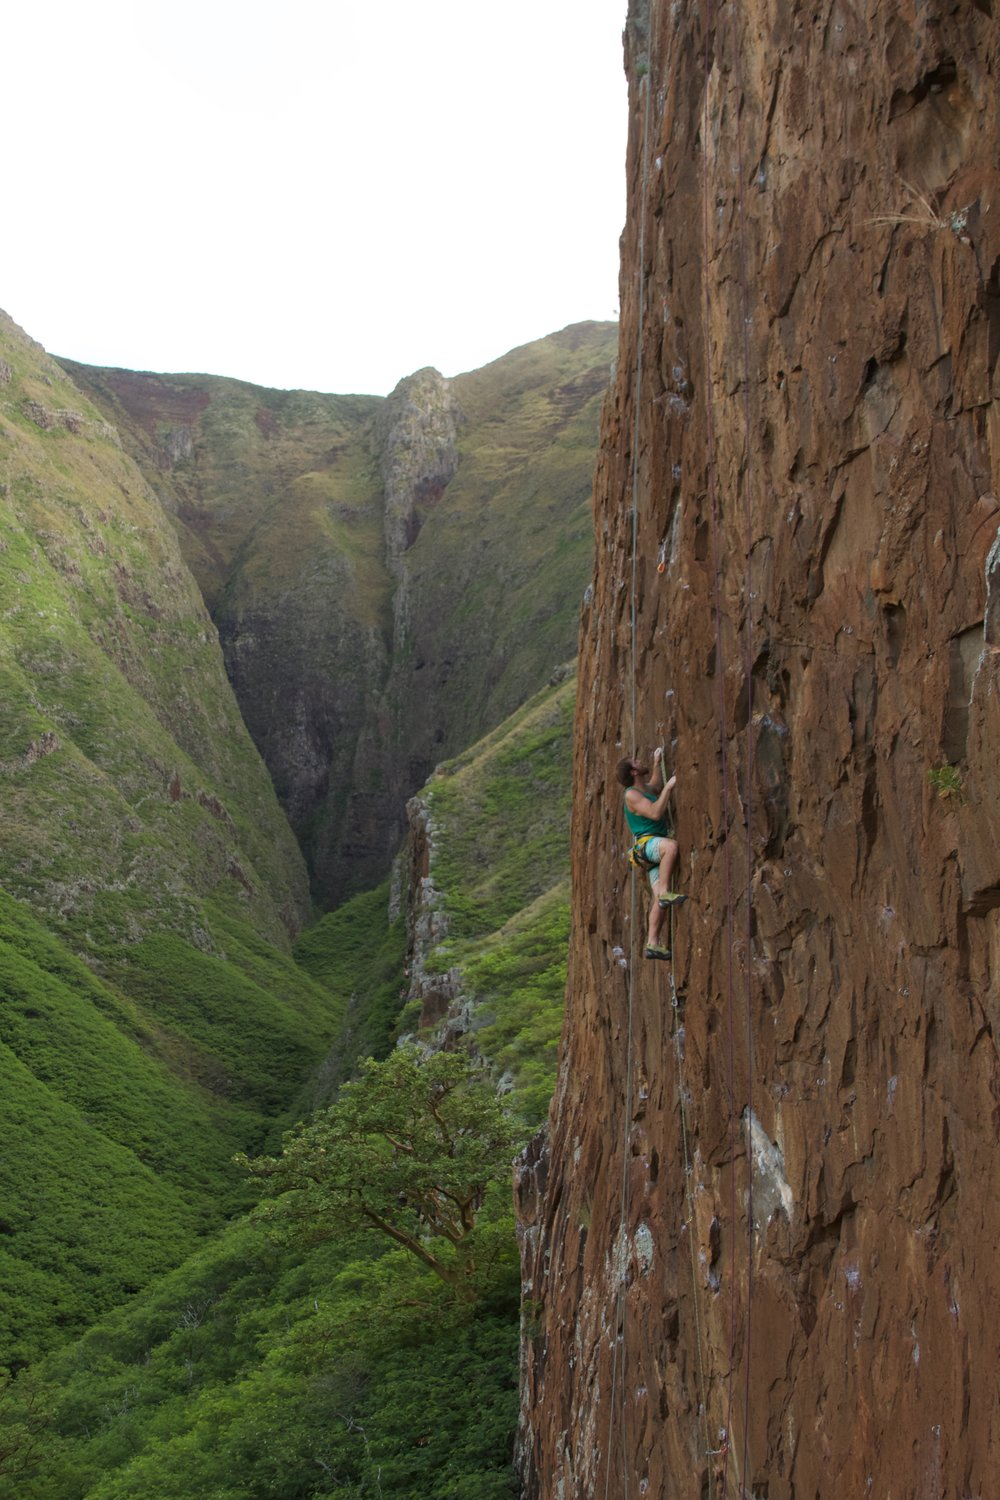 McLean on the stunning Maiden Voyage wall, one of four walls being developed in this valley near Lahaina.